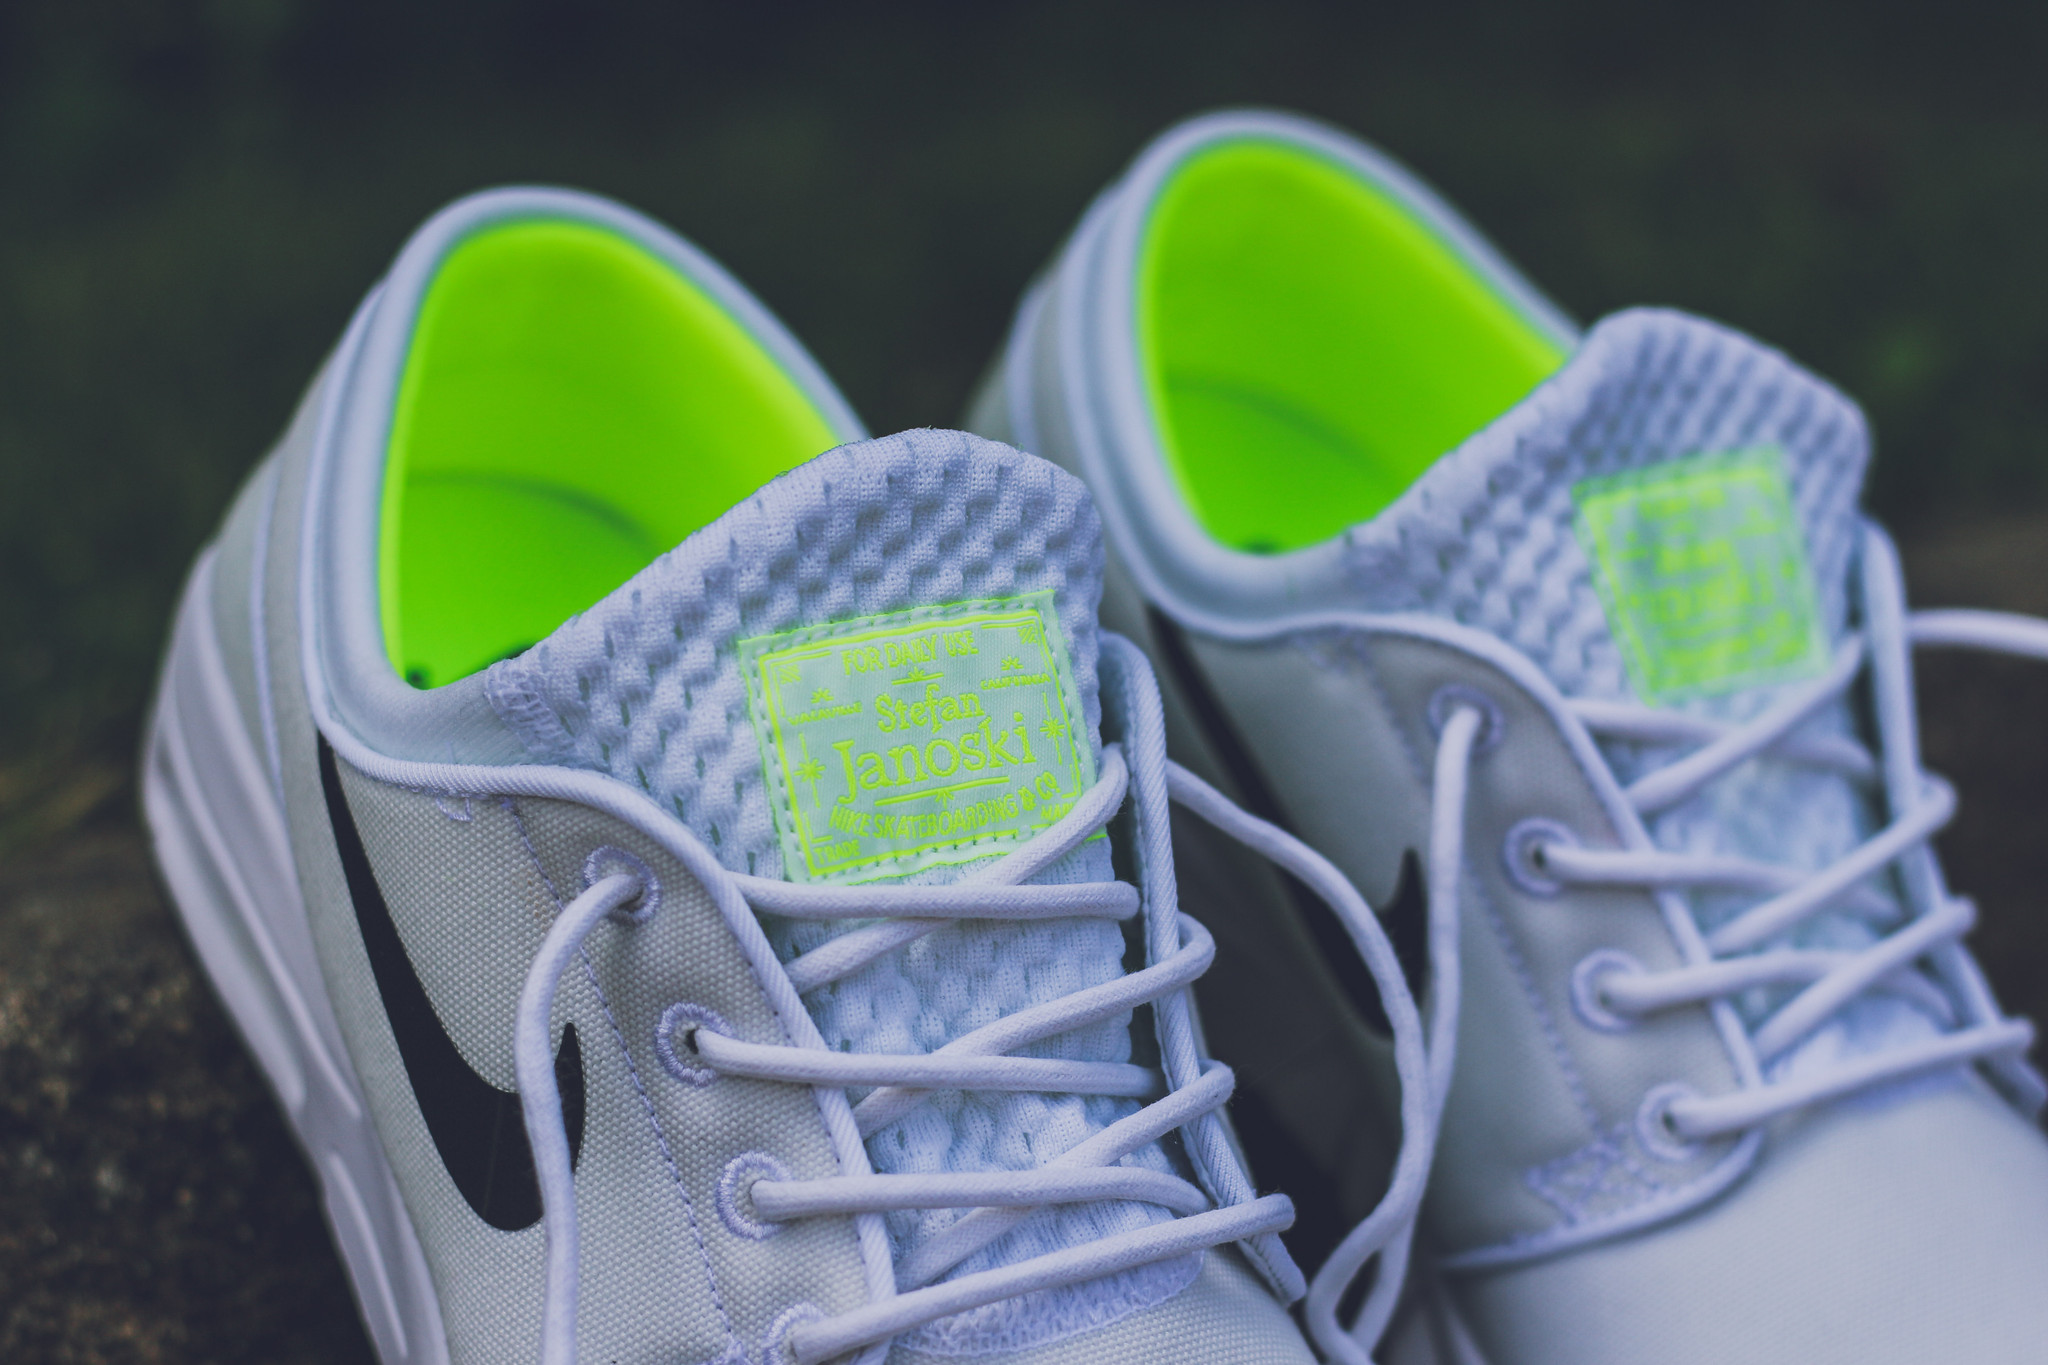 58f6373a708e9 The Nike SB Stefan Janoski has just released in a new White/Black/Volt  colorway that provides the right amount of color for those of you that are  fans of ...